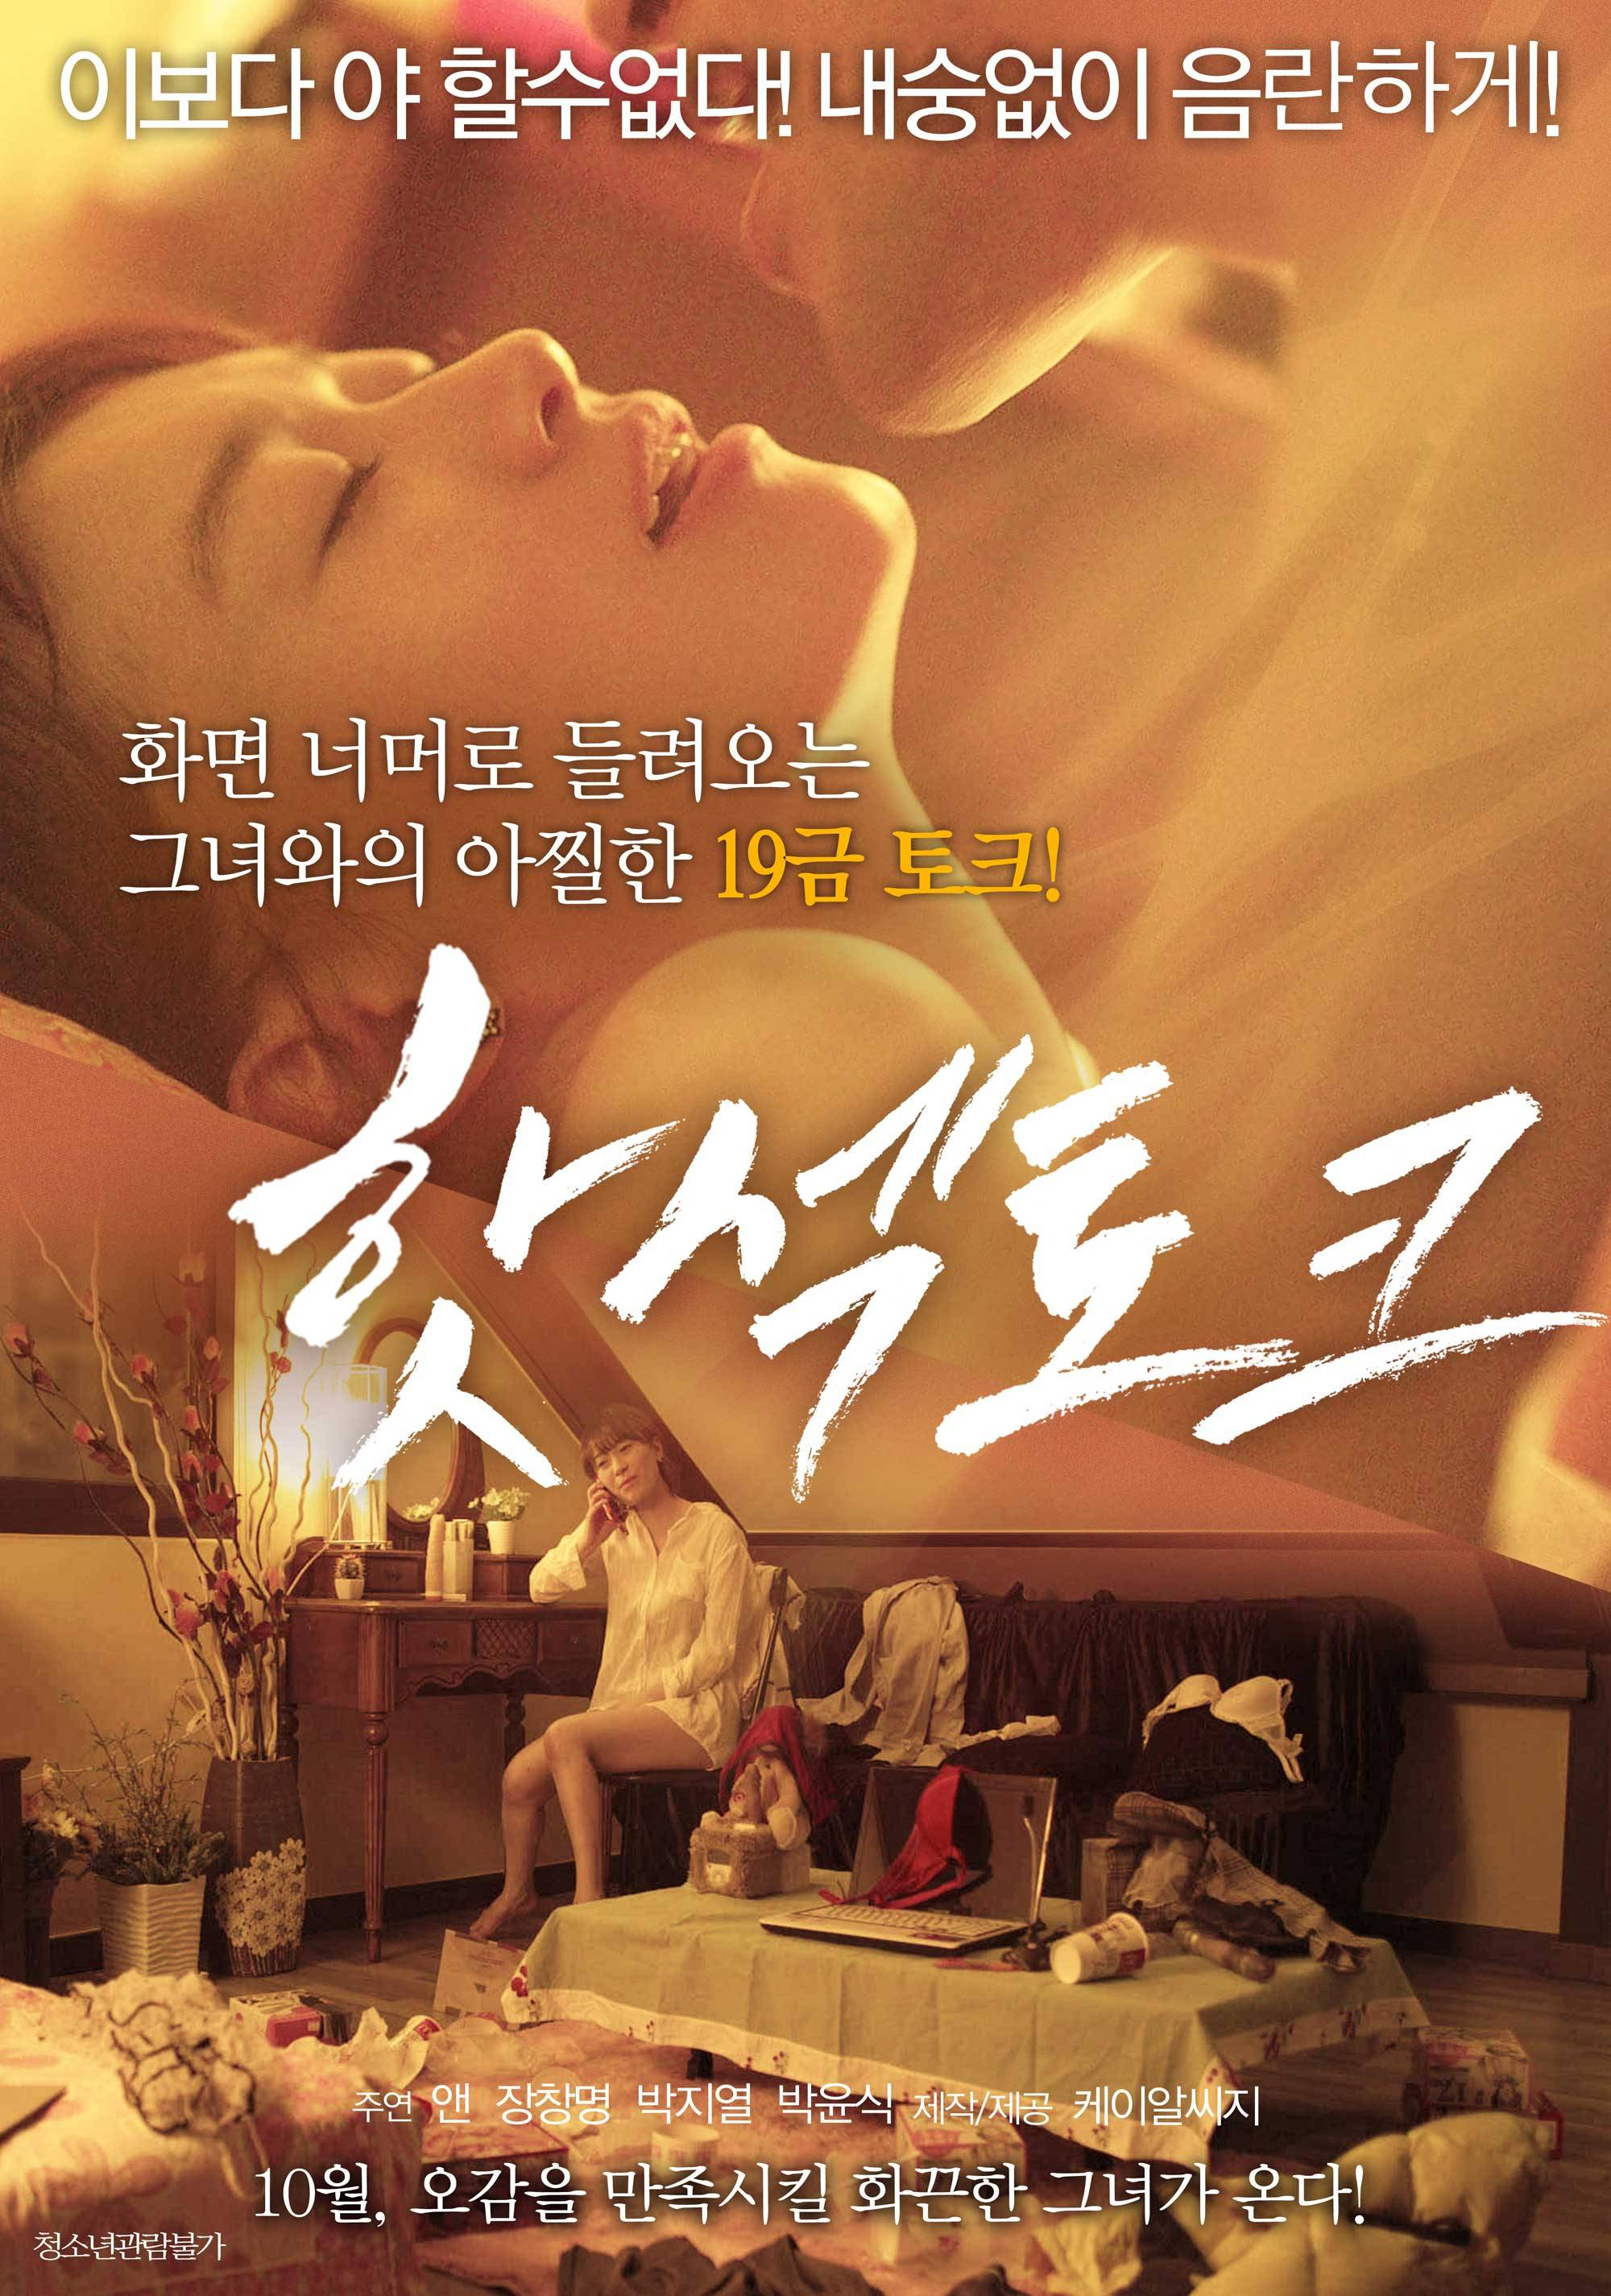 Korean movie opening today 2015/11/03 in Korea @ HanCinema